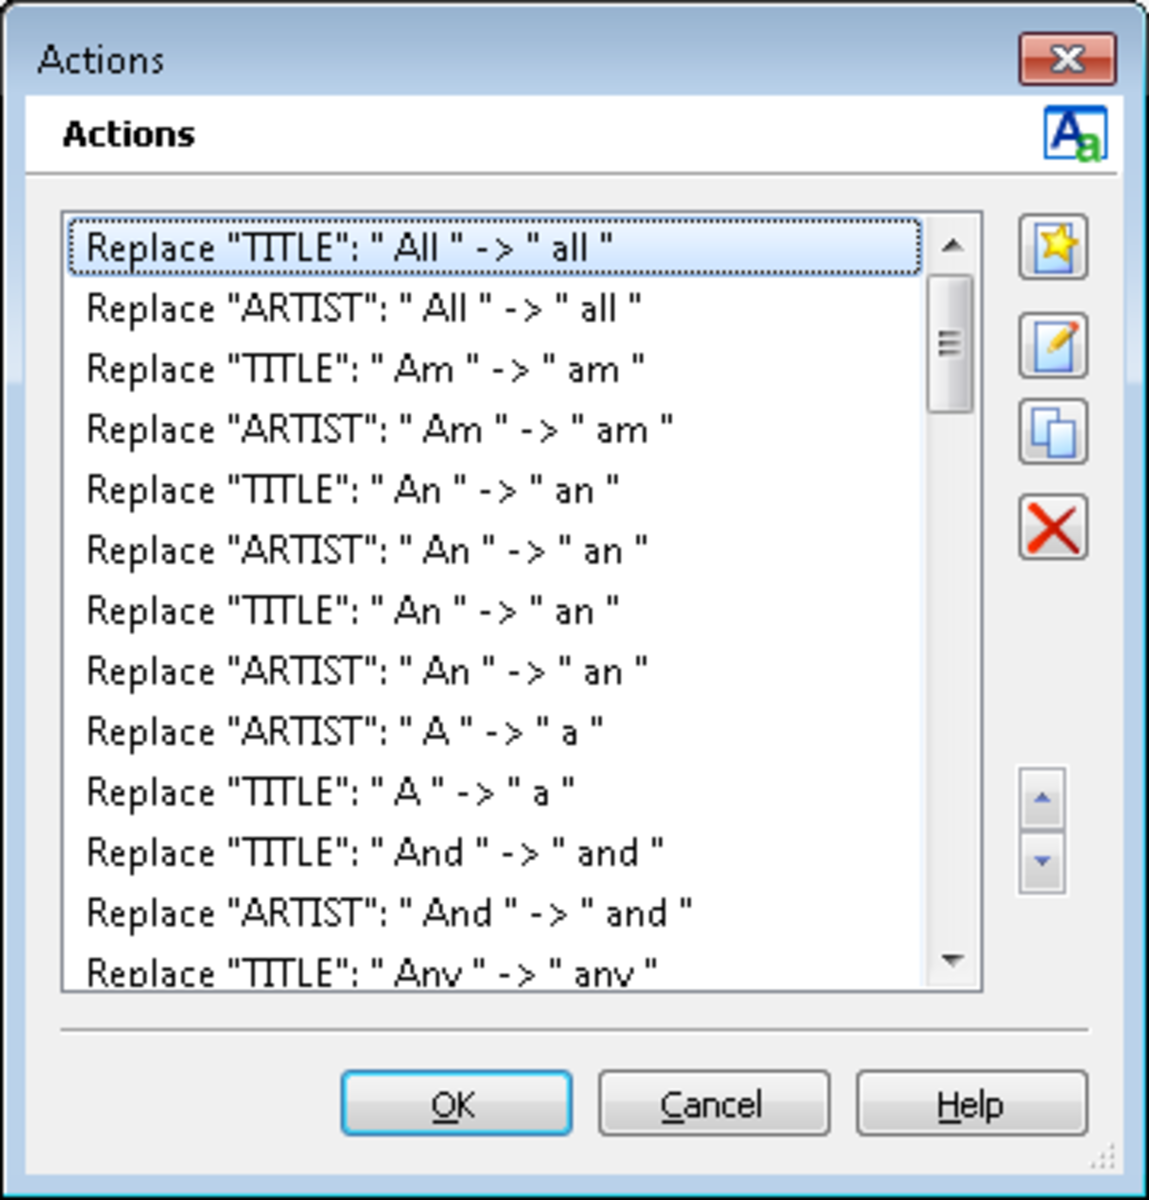 A number of rules or actions created using MP3Tag to convert specific words to lower case.